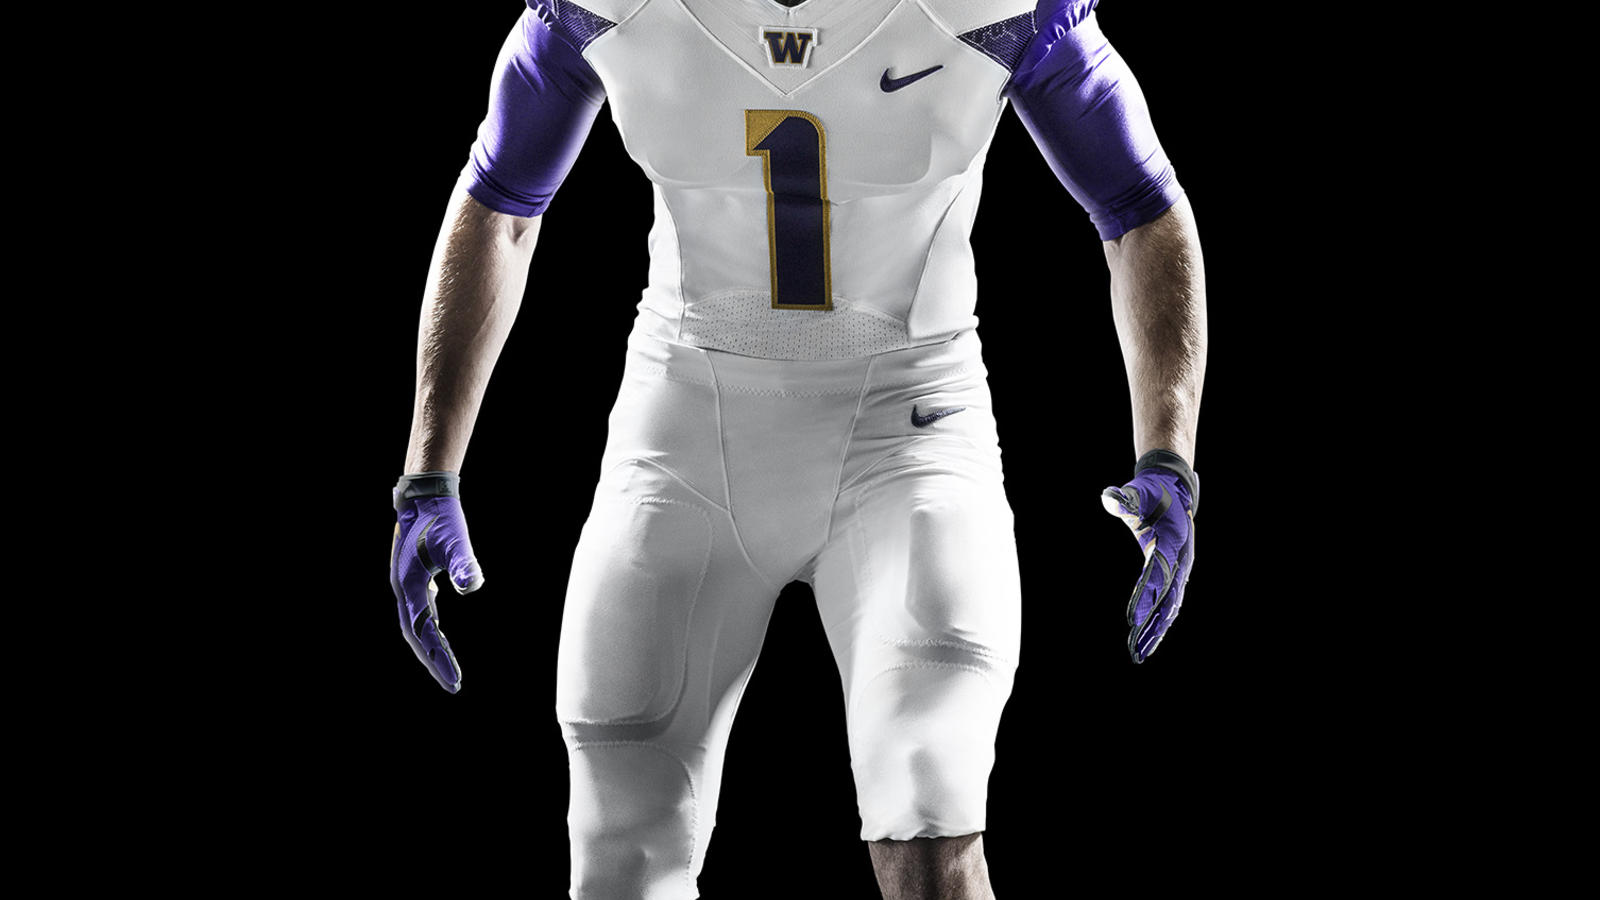 College Football Wallpapers Hd Nike News Washington Unveils New 2014 Nike Football Uniforms